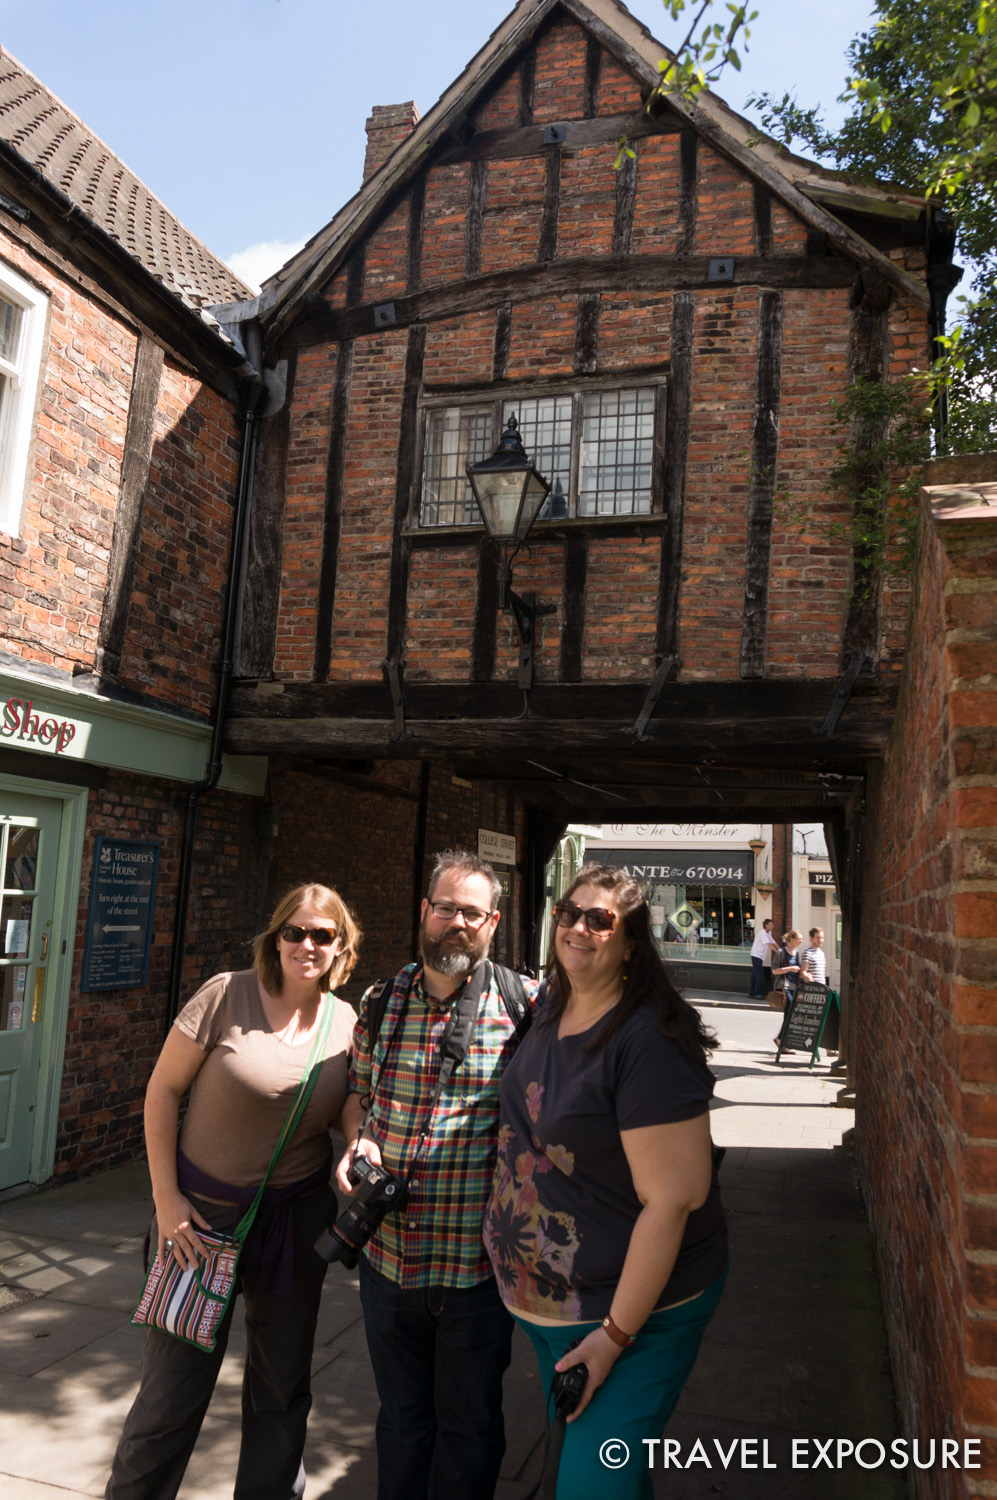 Here I am with Bryan and Jen in York.